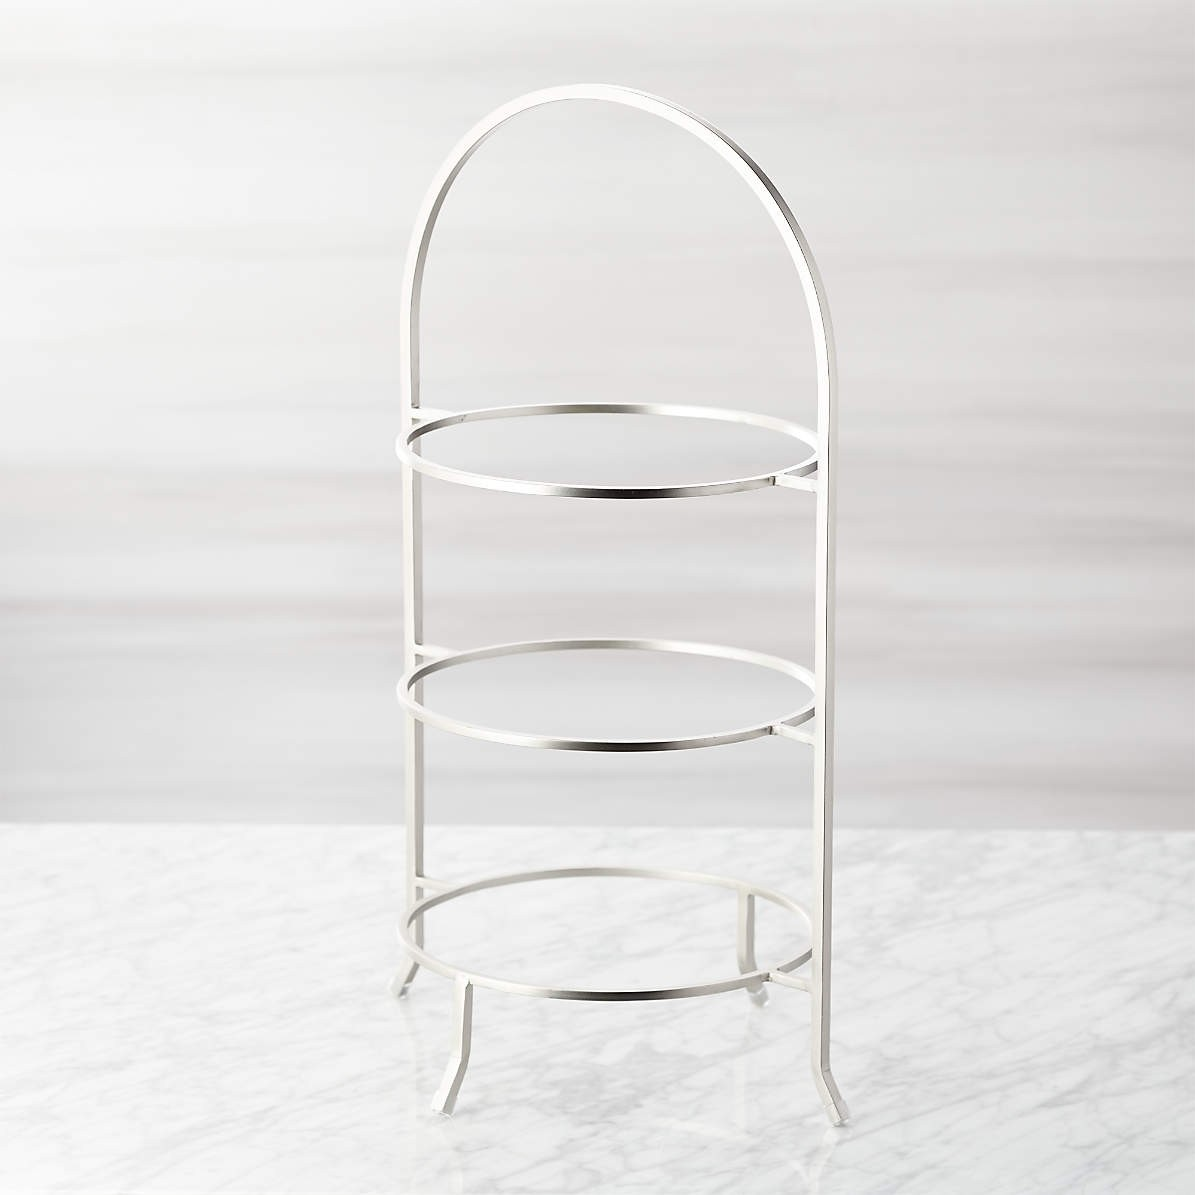 3 Tier Satin Stainless Steel Serving Plate Stands